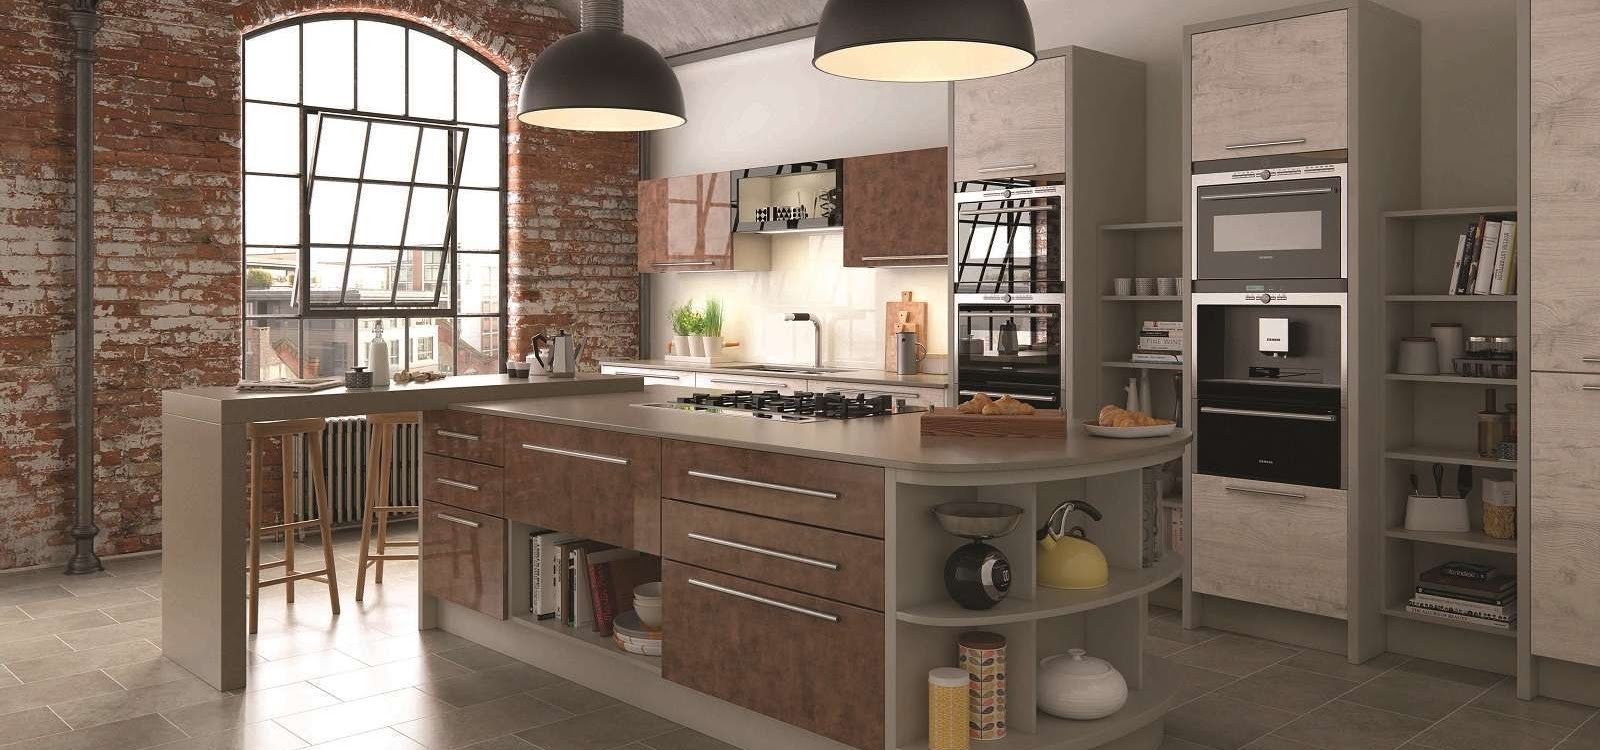 Designer Kitchens In Berkshire | Orphic Kitchens